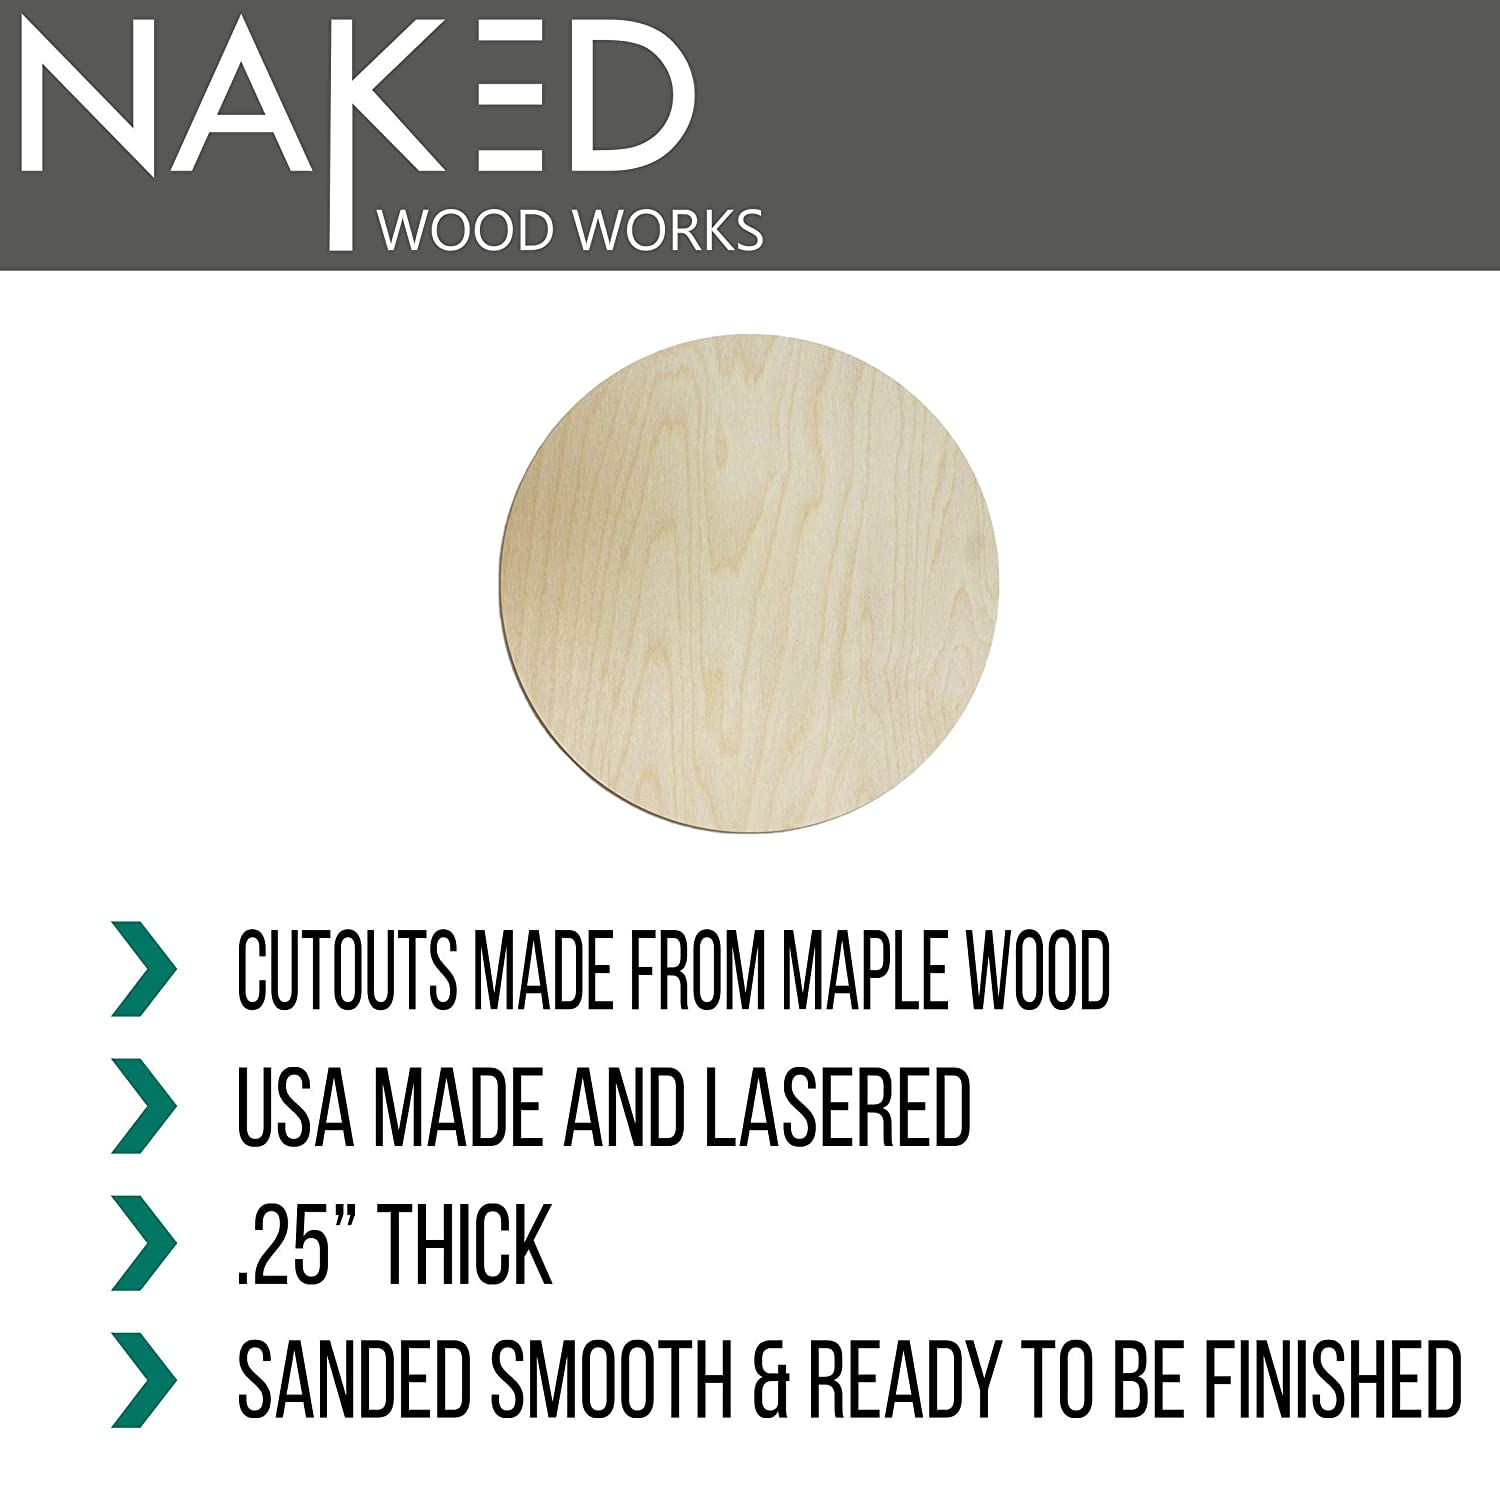 """Perfect for Craft Projects Additional options include a pack of 10 10/"""" rounds 12/"""" rounds DIY Signs and much more. Naked Wood Works 9/"""" wooden circle cutout package of 6"""